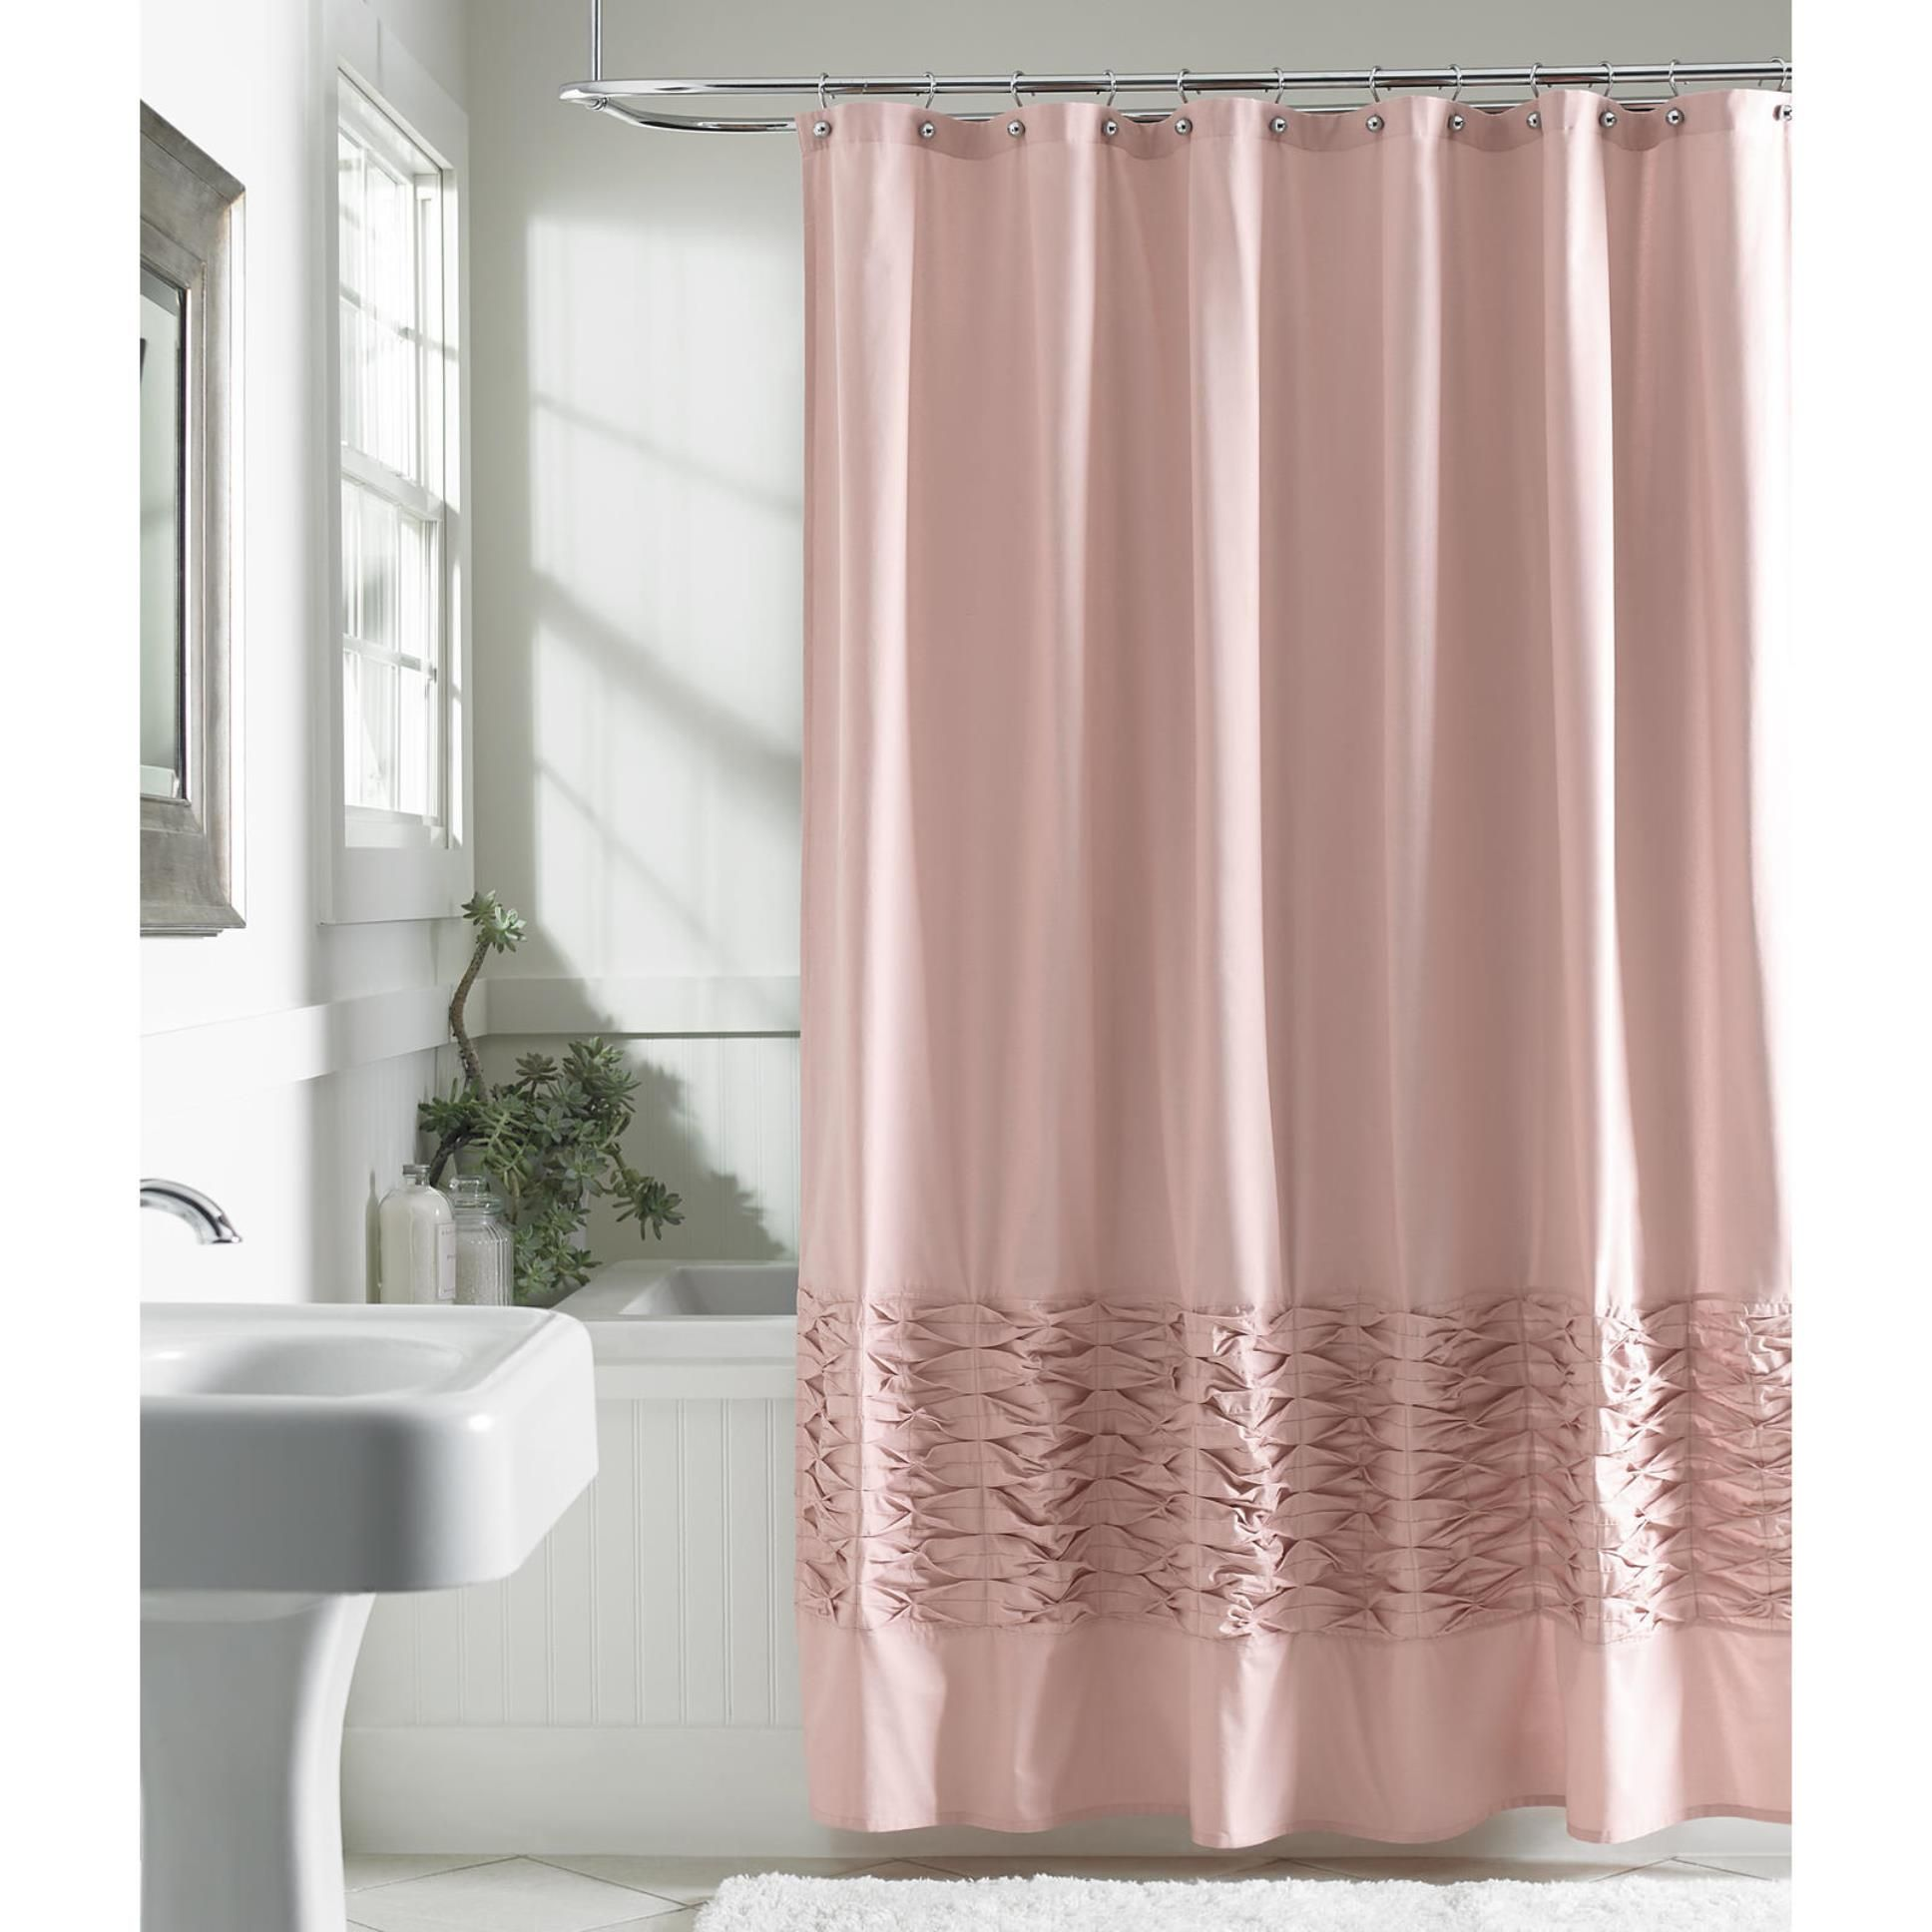 Metaphor Fabric Shower Curtain Blush Pink Products Pinterest Blush Pink Fabrics And